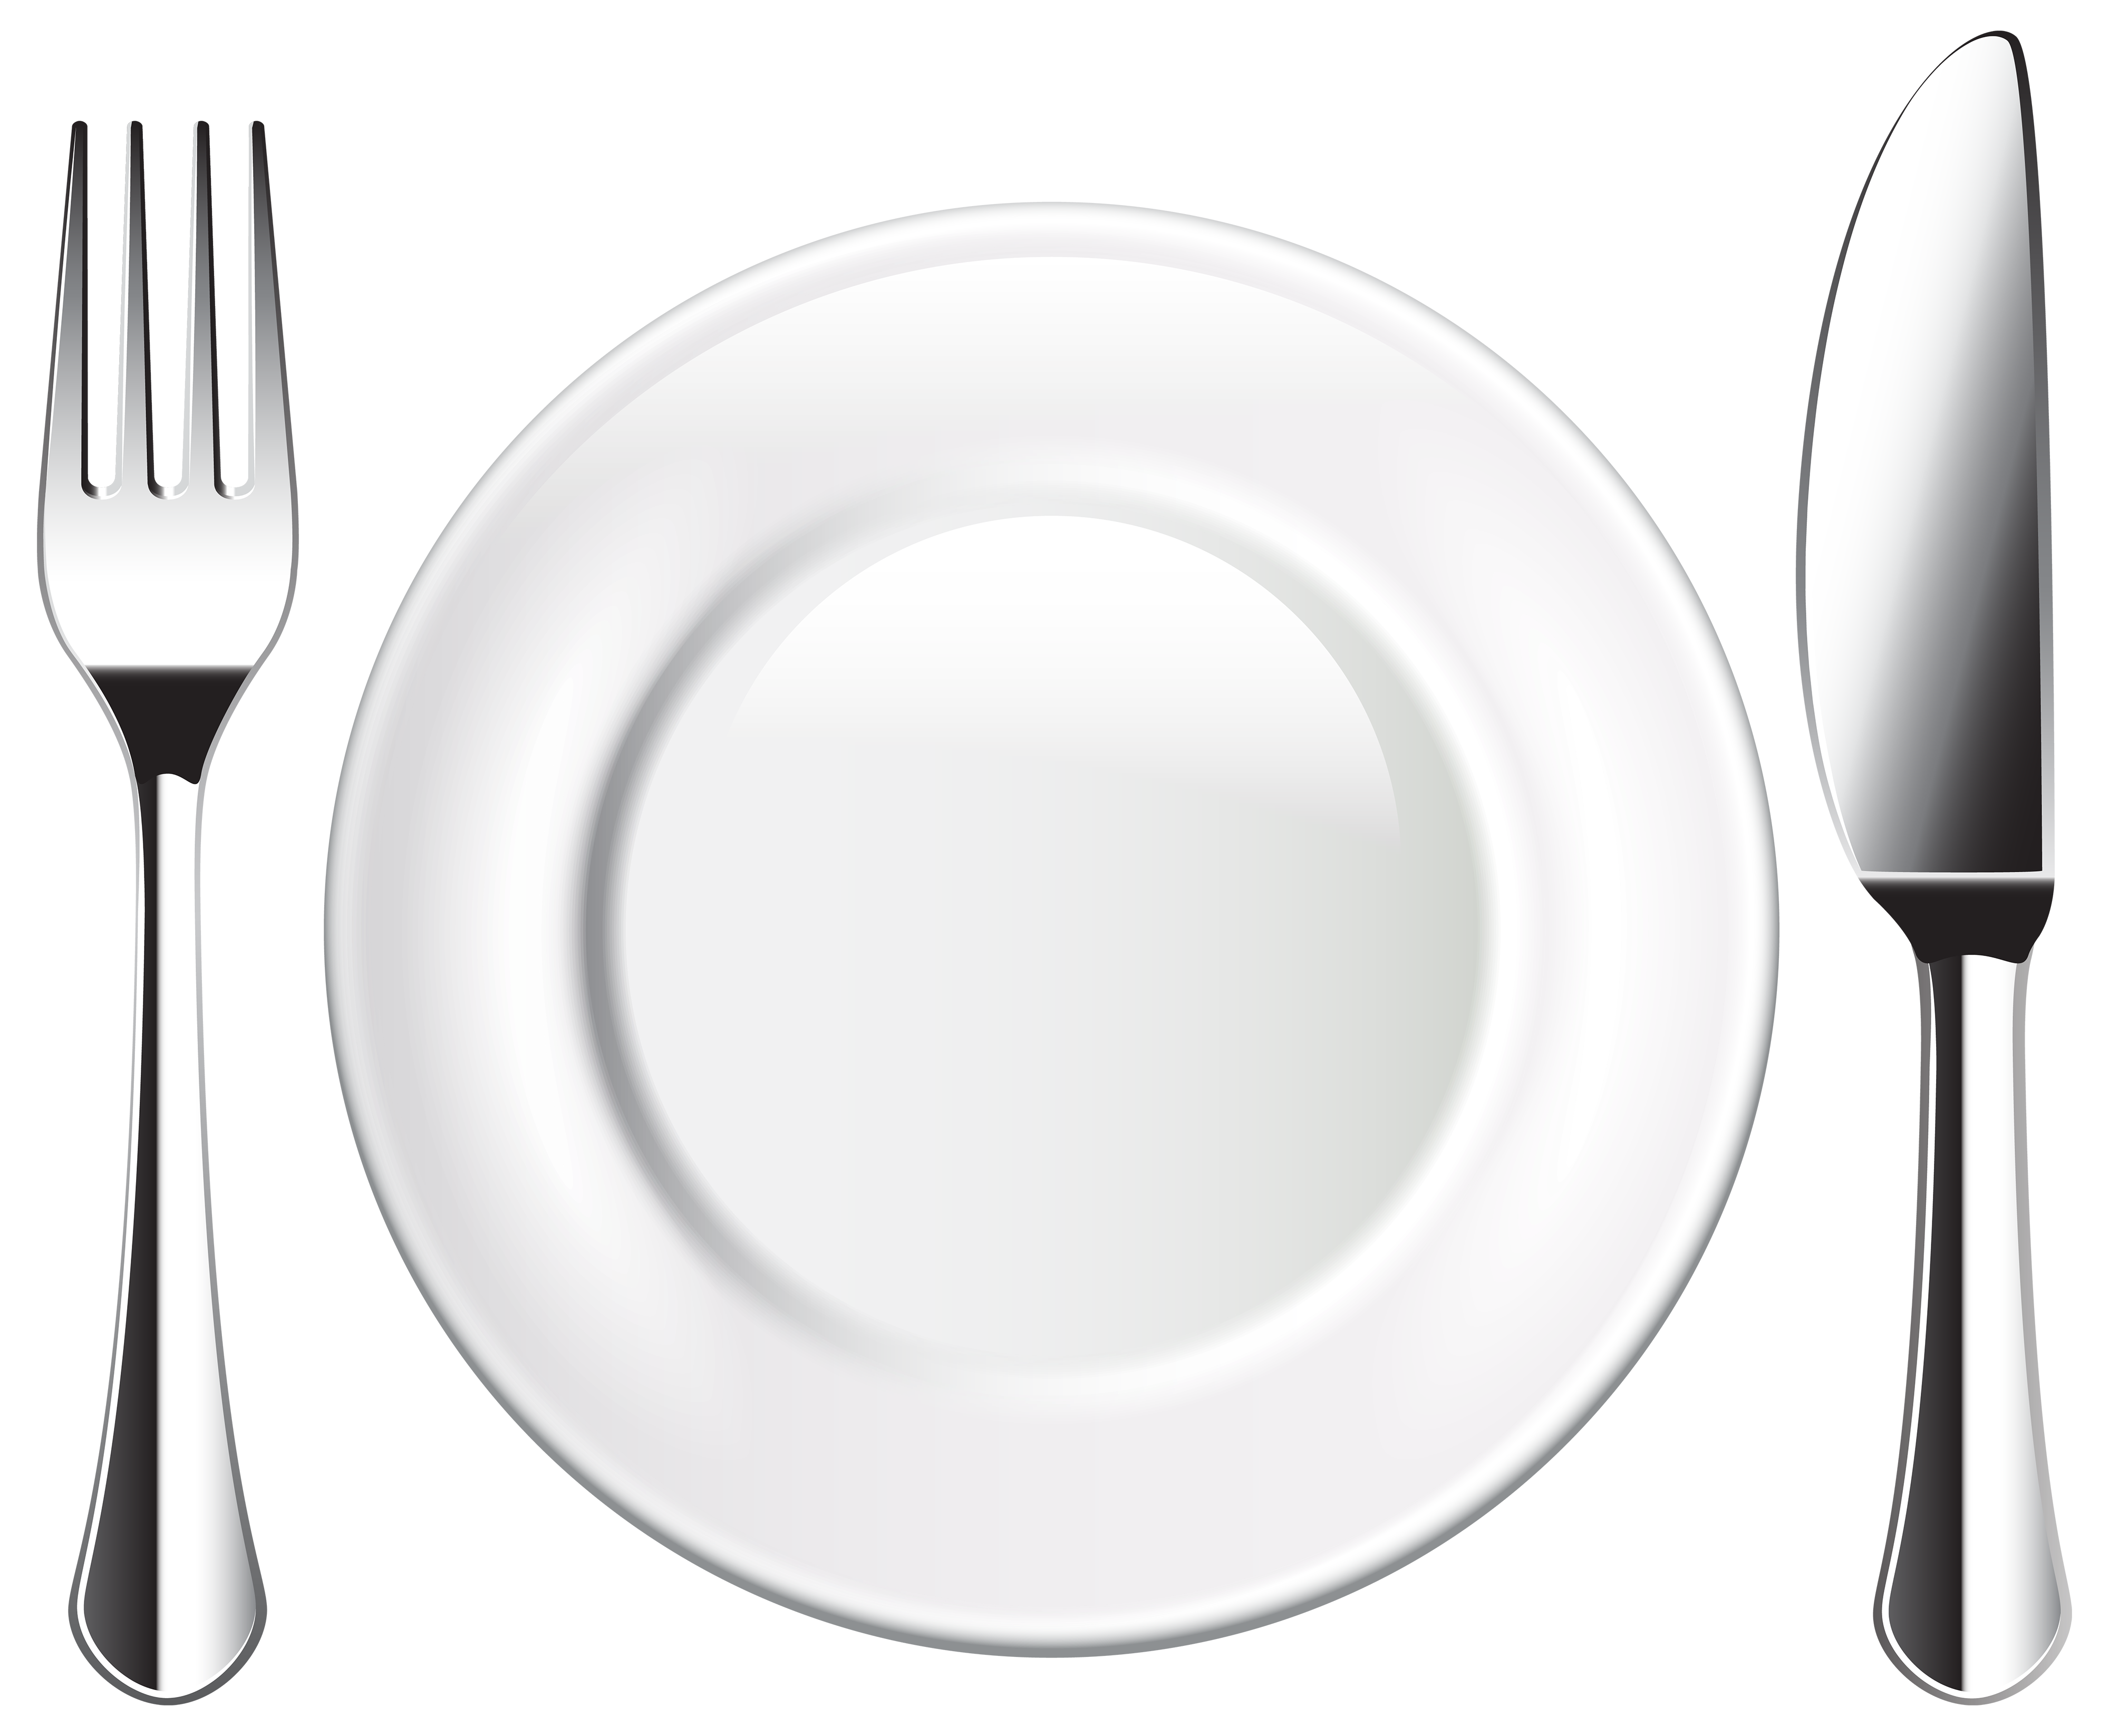 Plate Knife And Fork Png Clipart Clipart Black And White Library Kitchen Icon Kitchen Spoon Knife And Fork